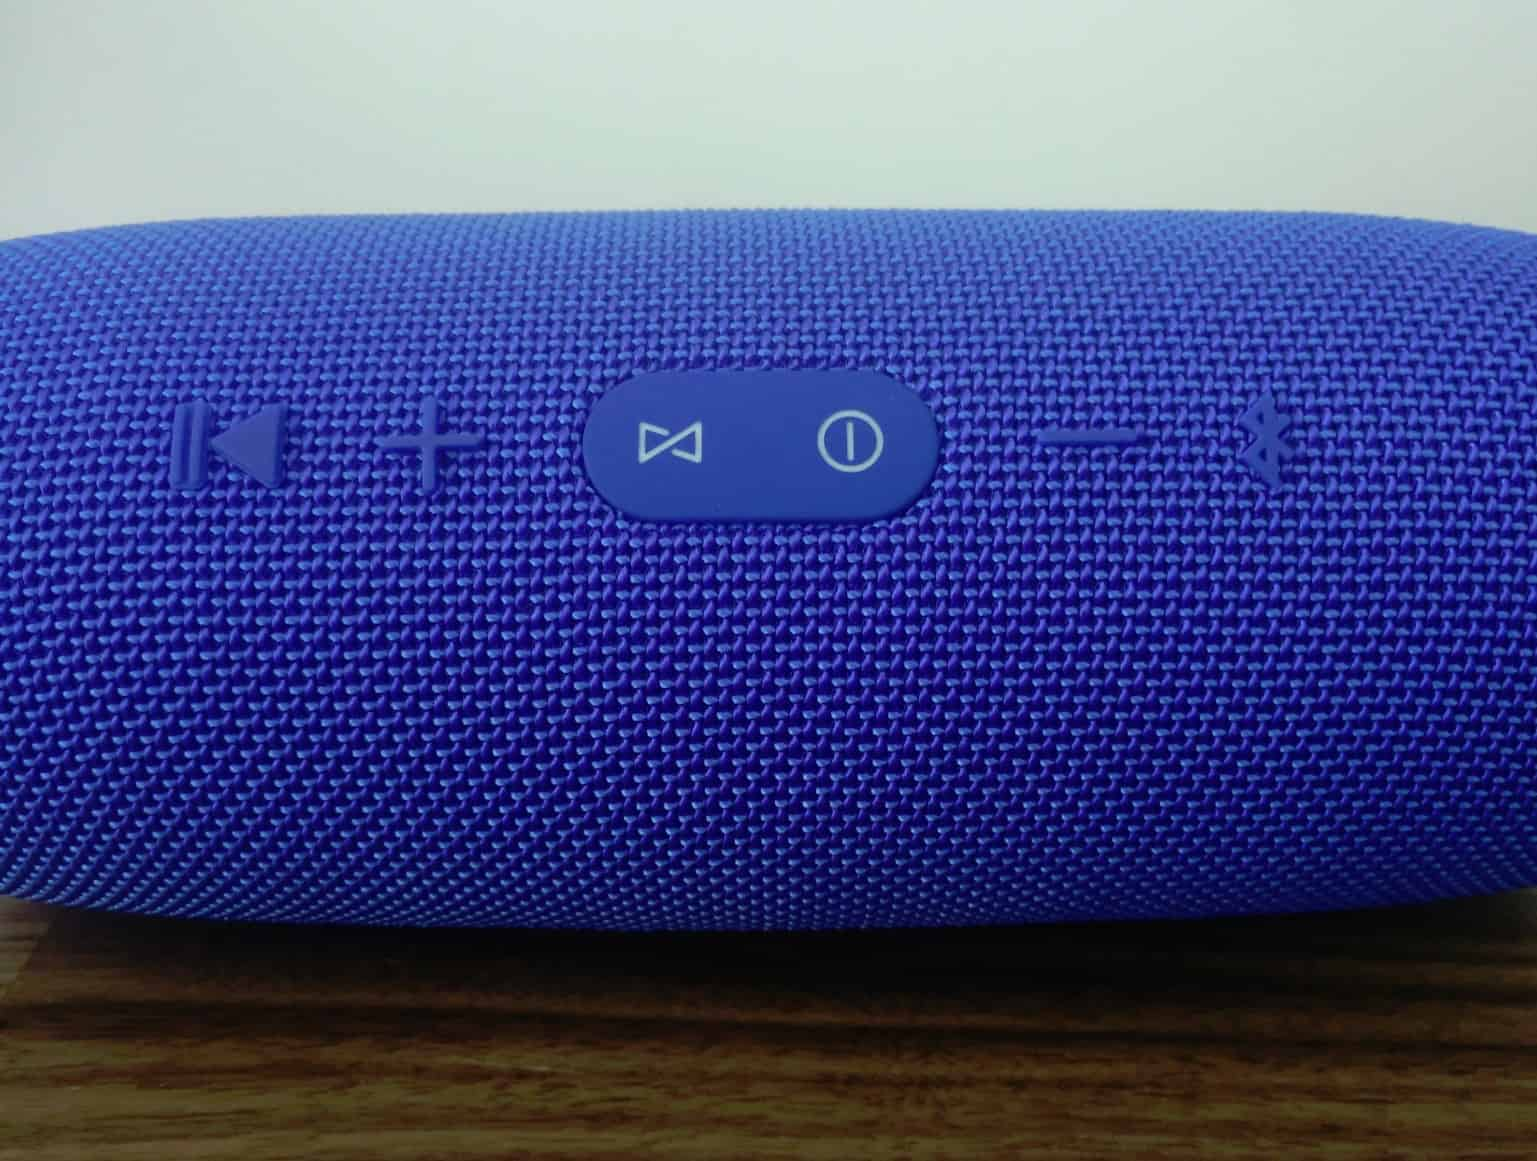 JBL-Charge-3-Photos-14 JBL Charge 3 Review